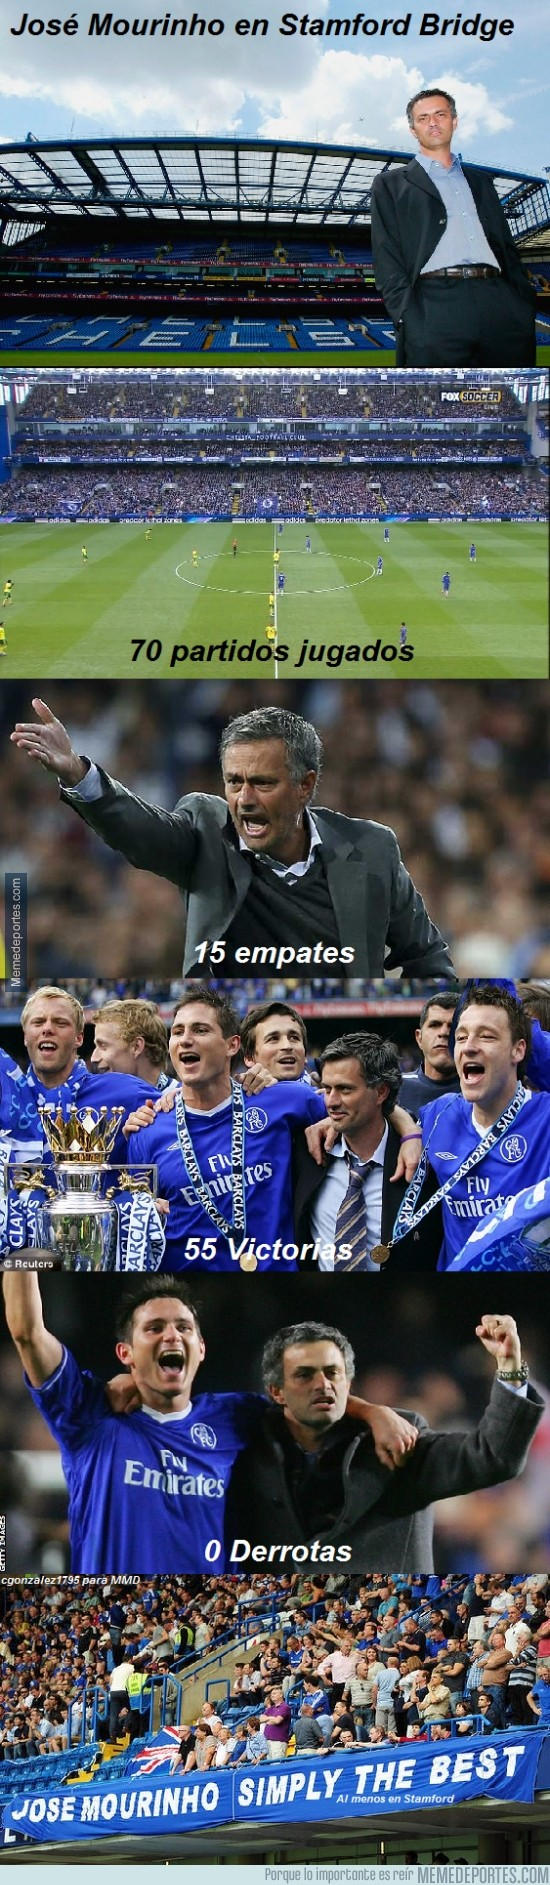 236637 - Mourinho simply the best... en Stamford Bridge